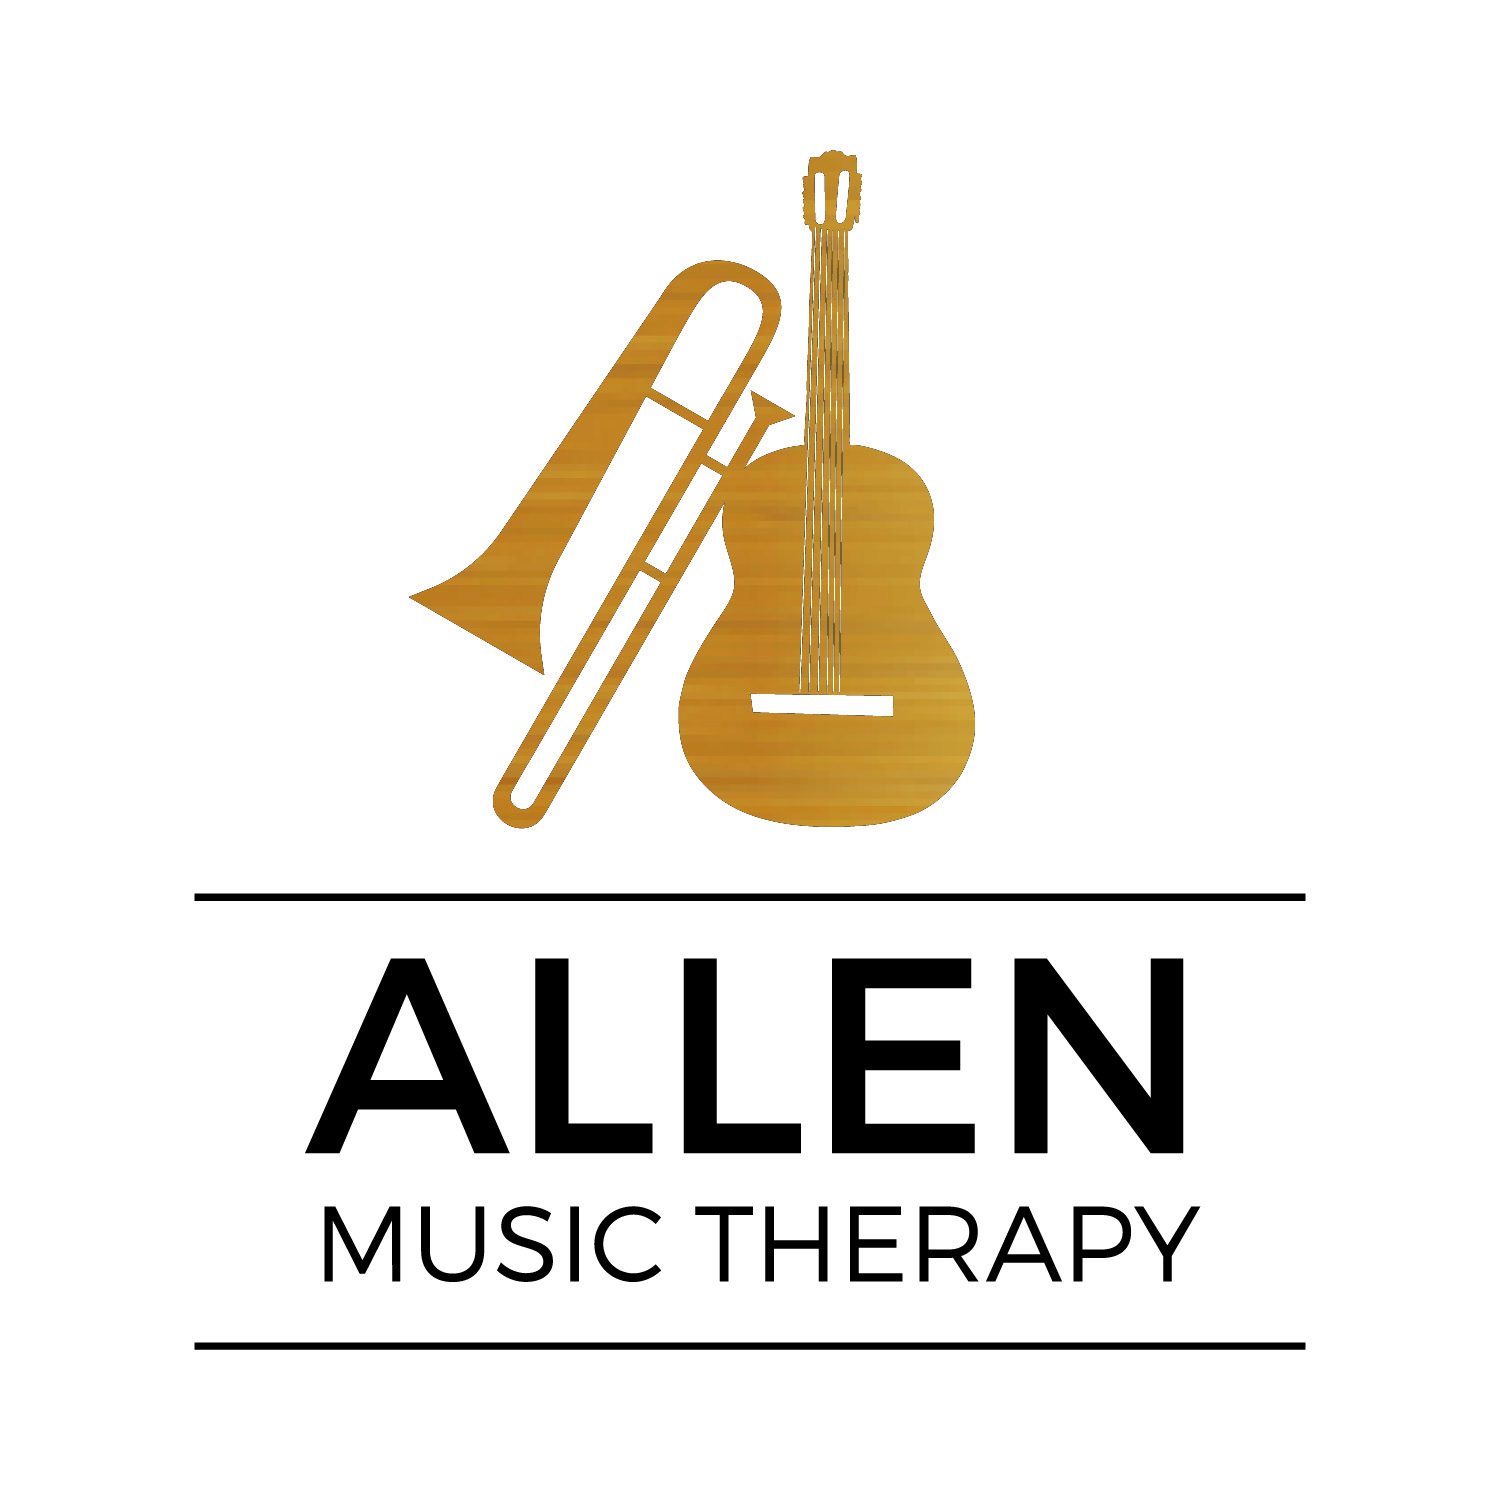 Allen Music Therapy